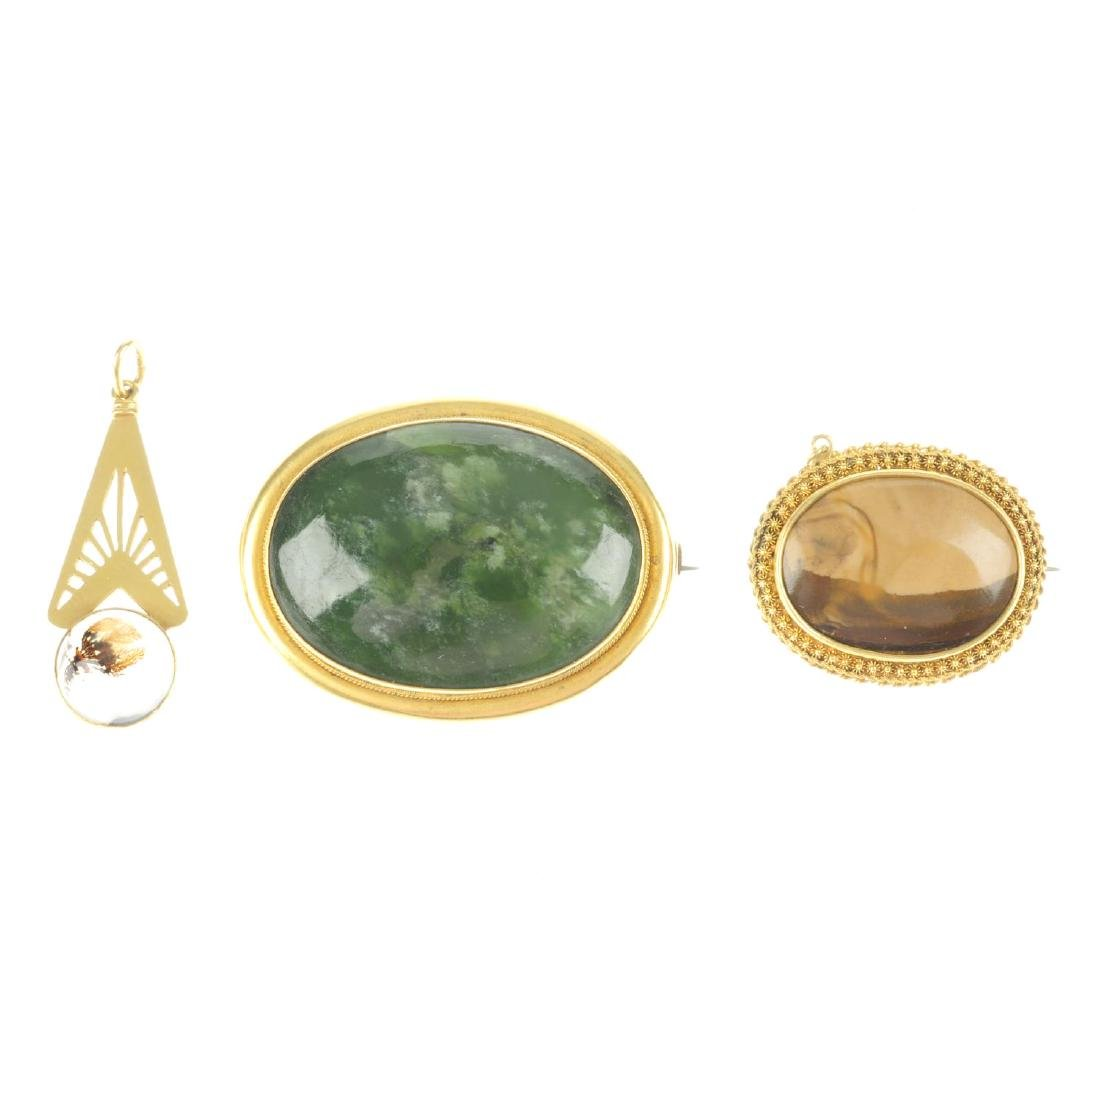 Two hardstone brooches and a hardstone pendant. The